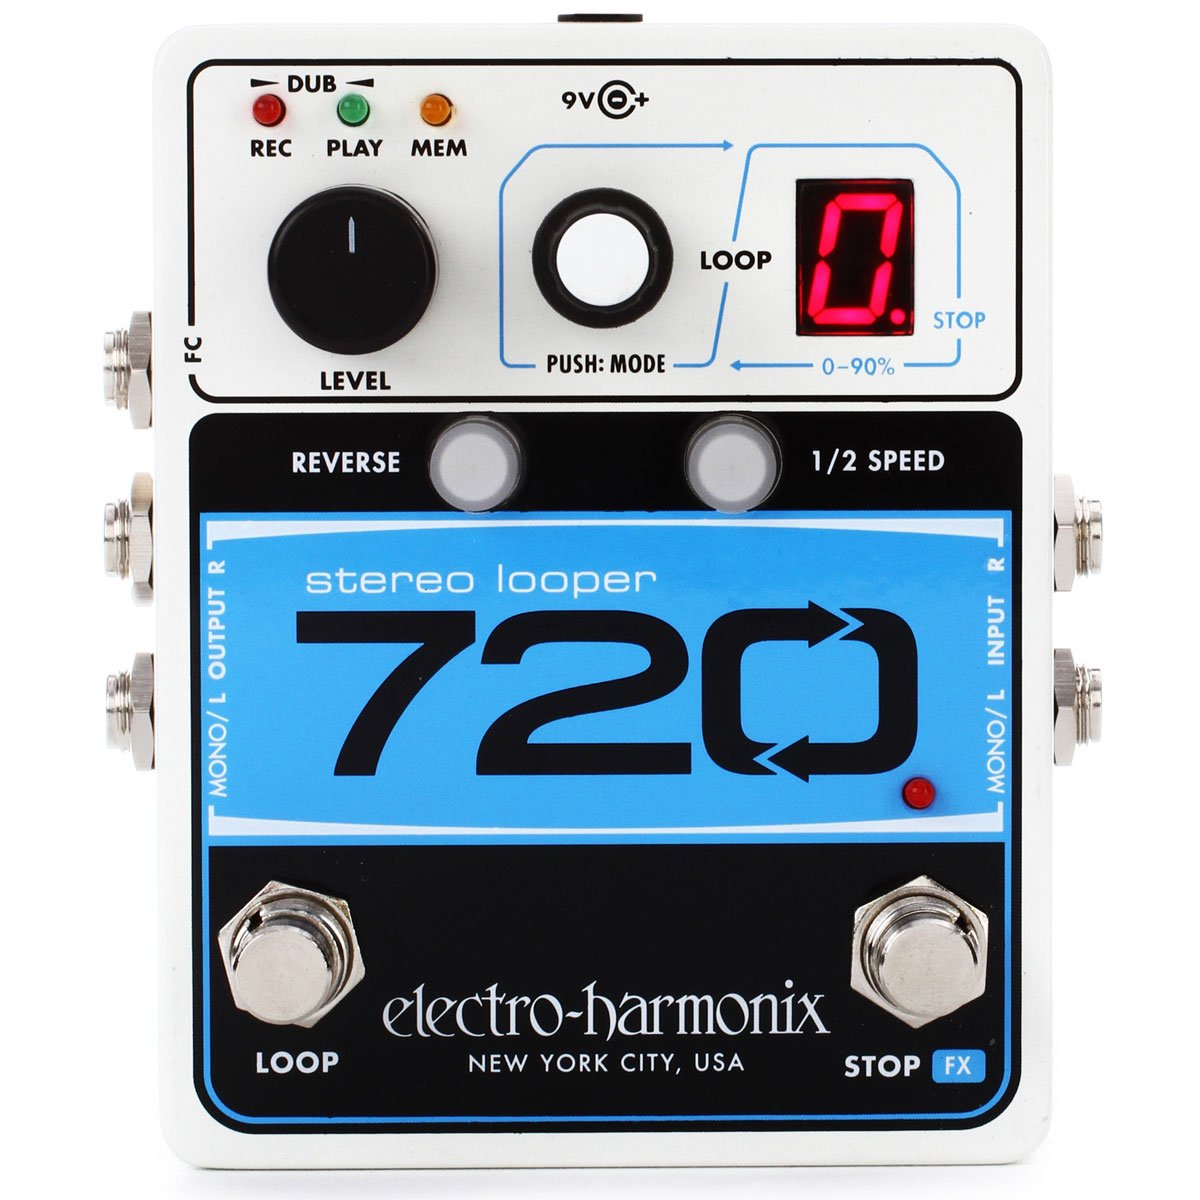 Electro Harmonix - 720 Stereo Looper (PSU Included)